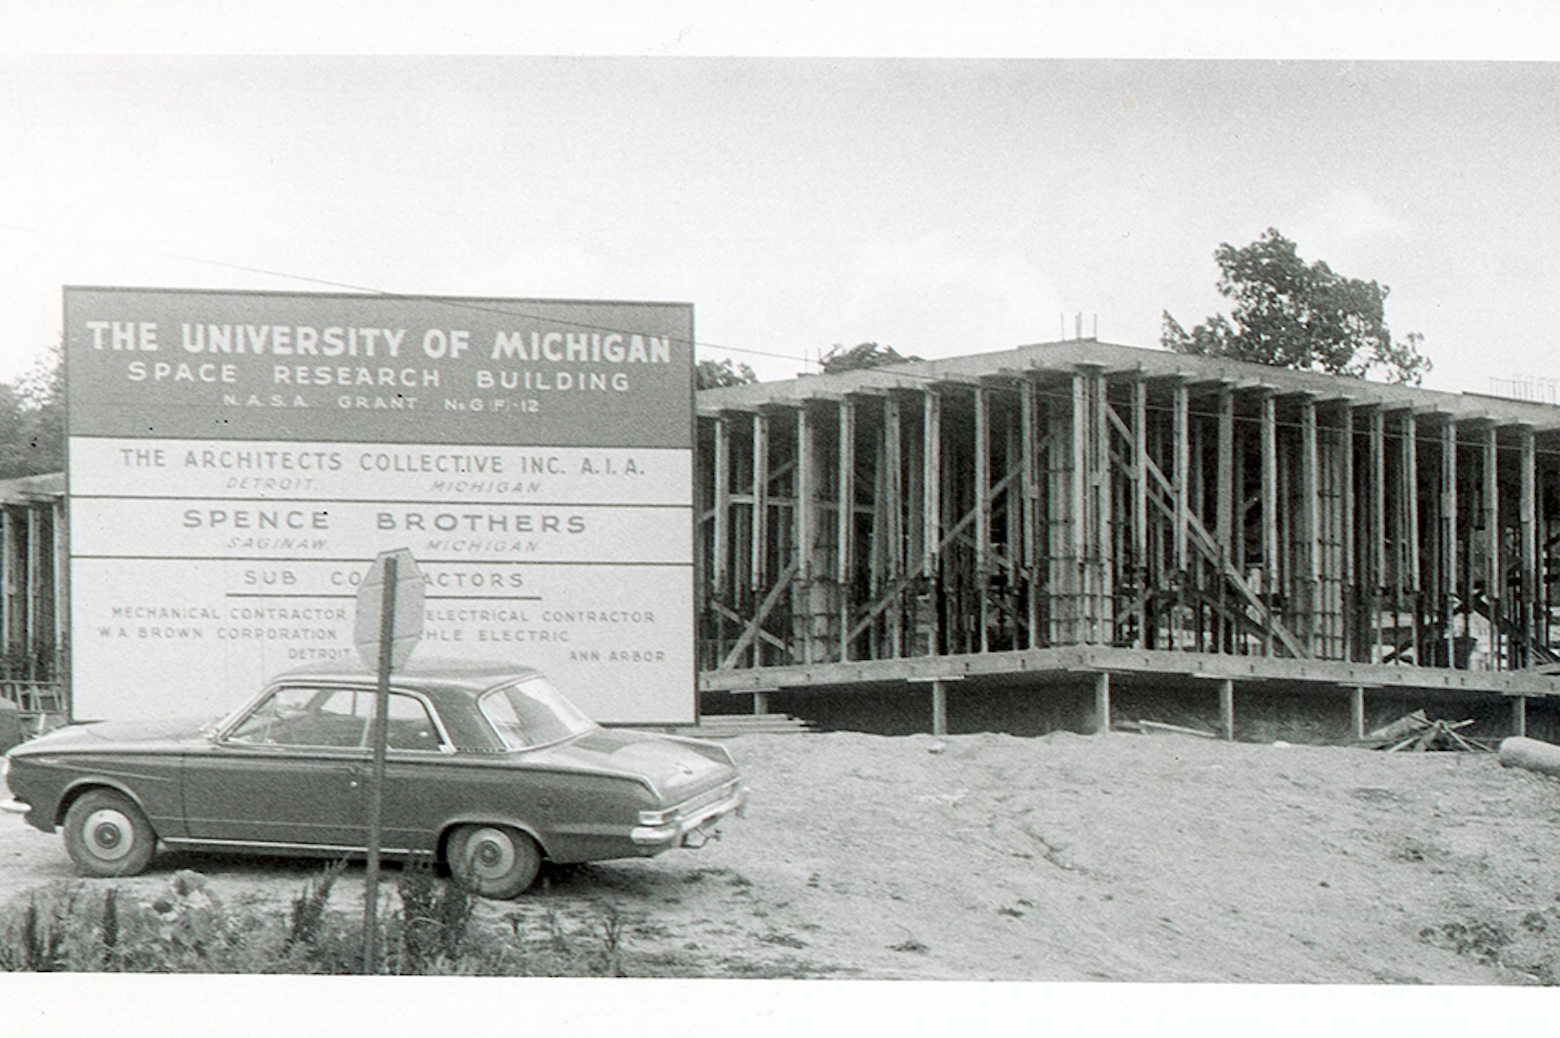 Space research building under construction